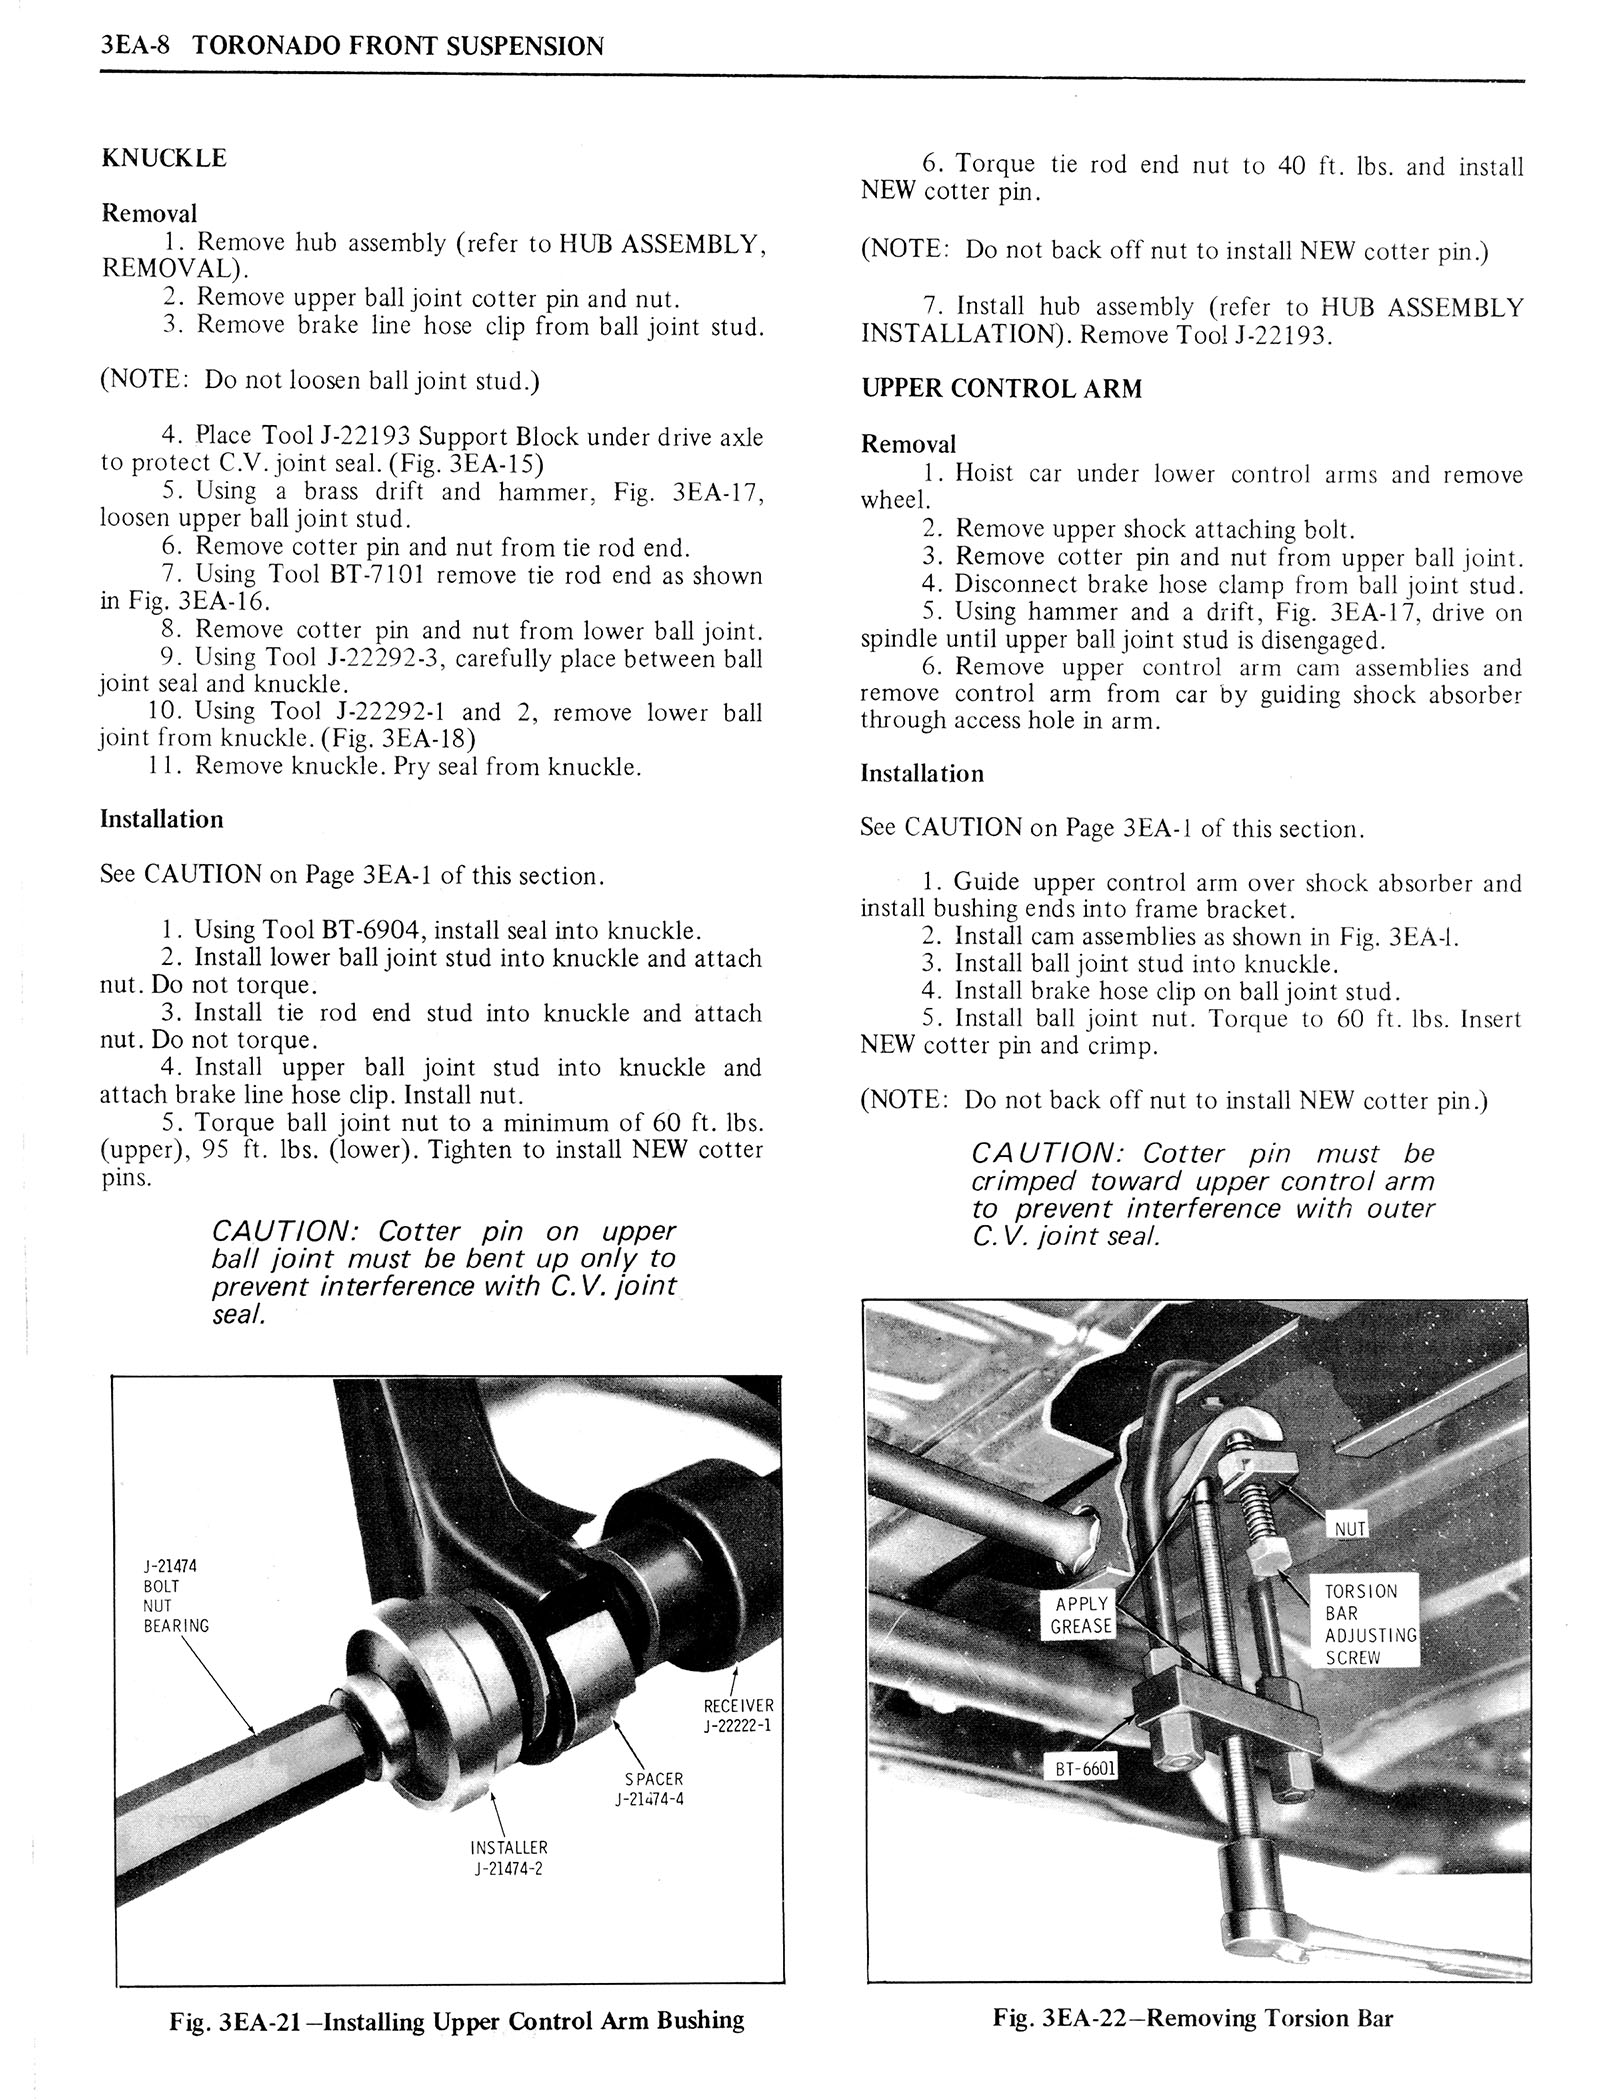 1976 Oldsmobile Service Manual page 216 of 1390